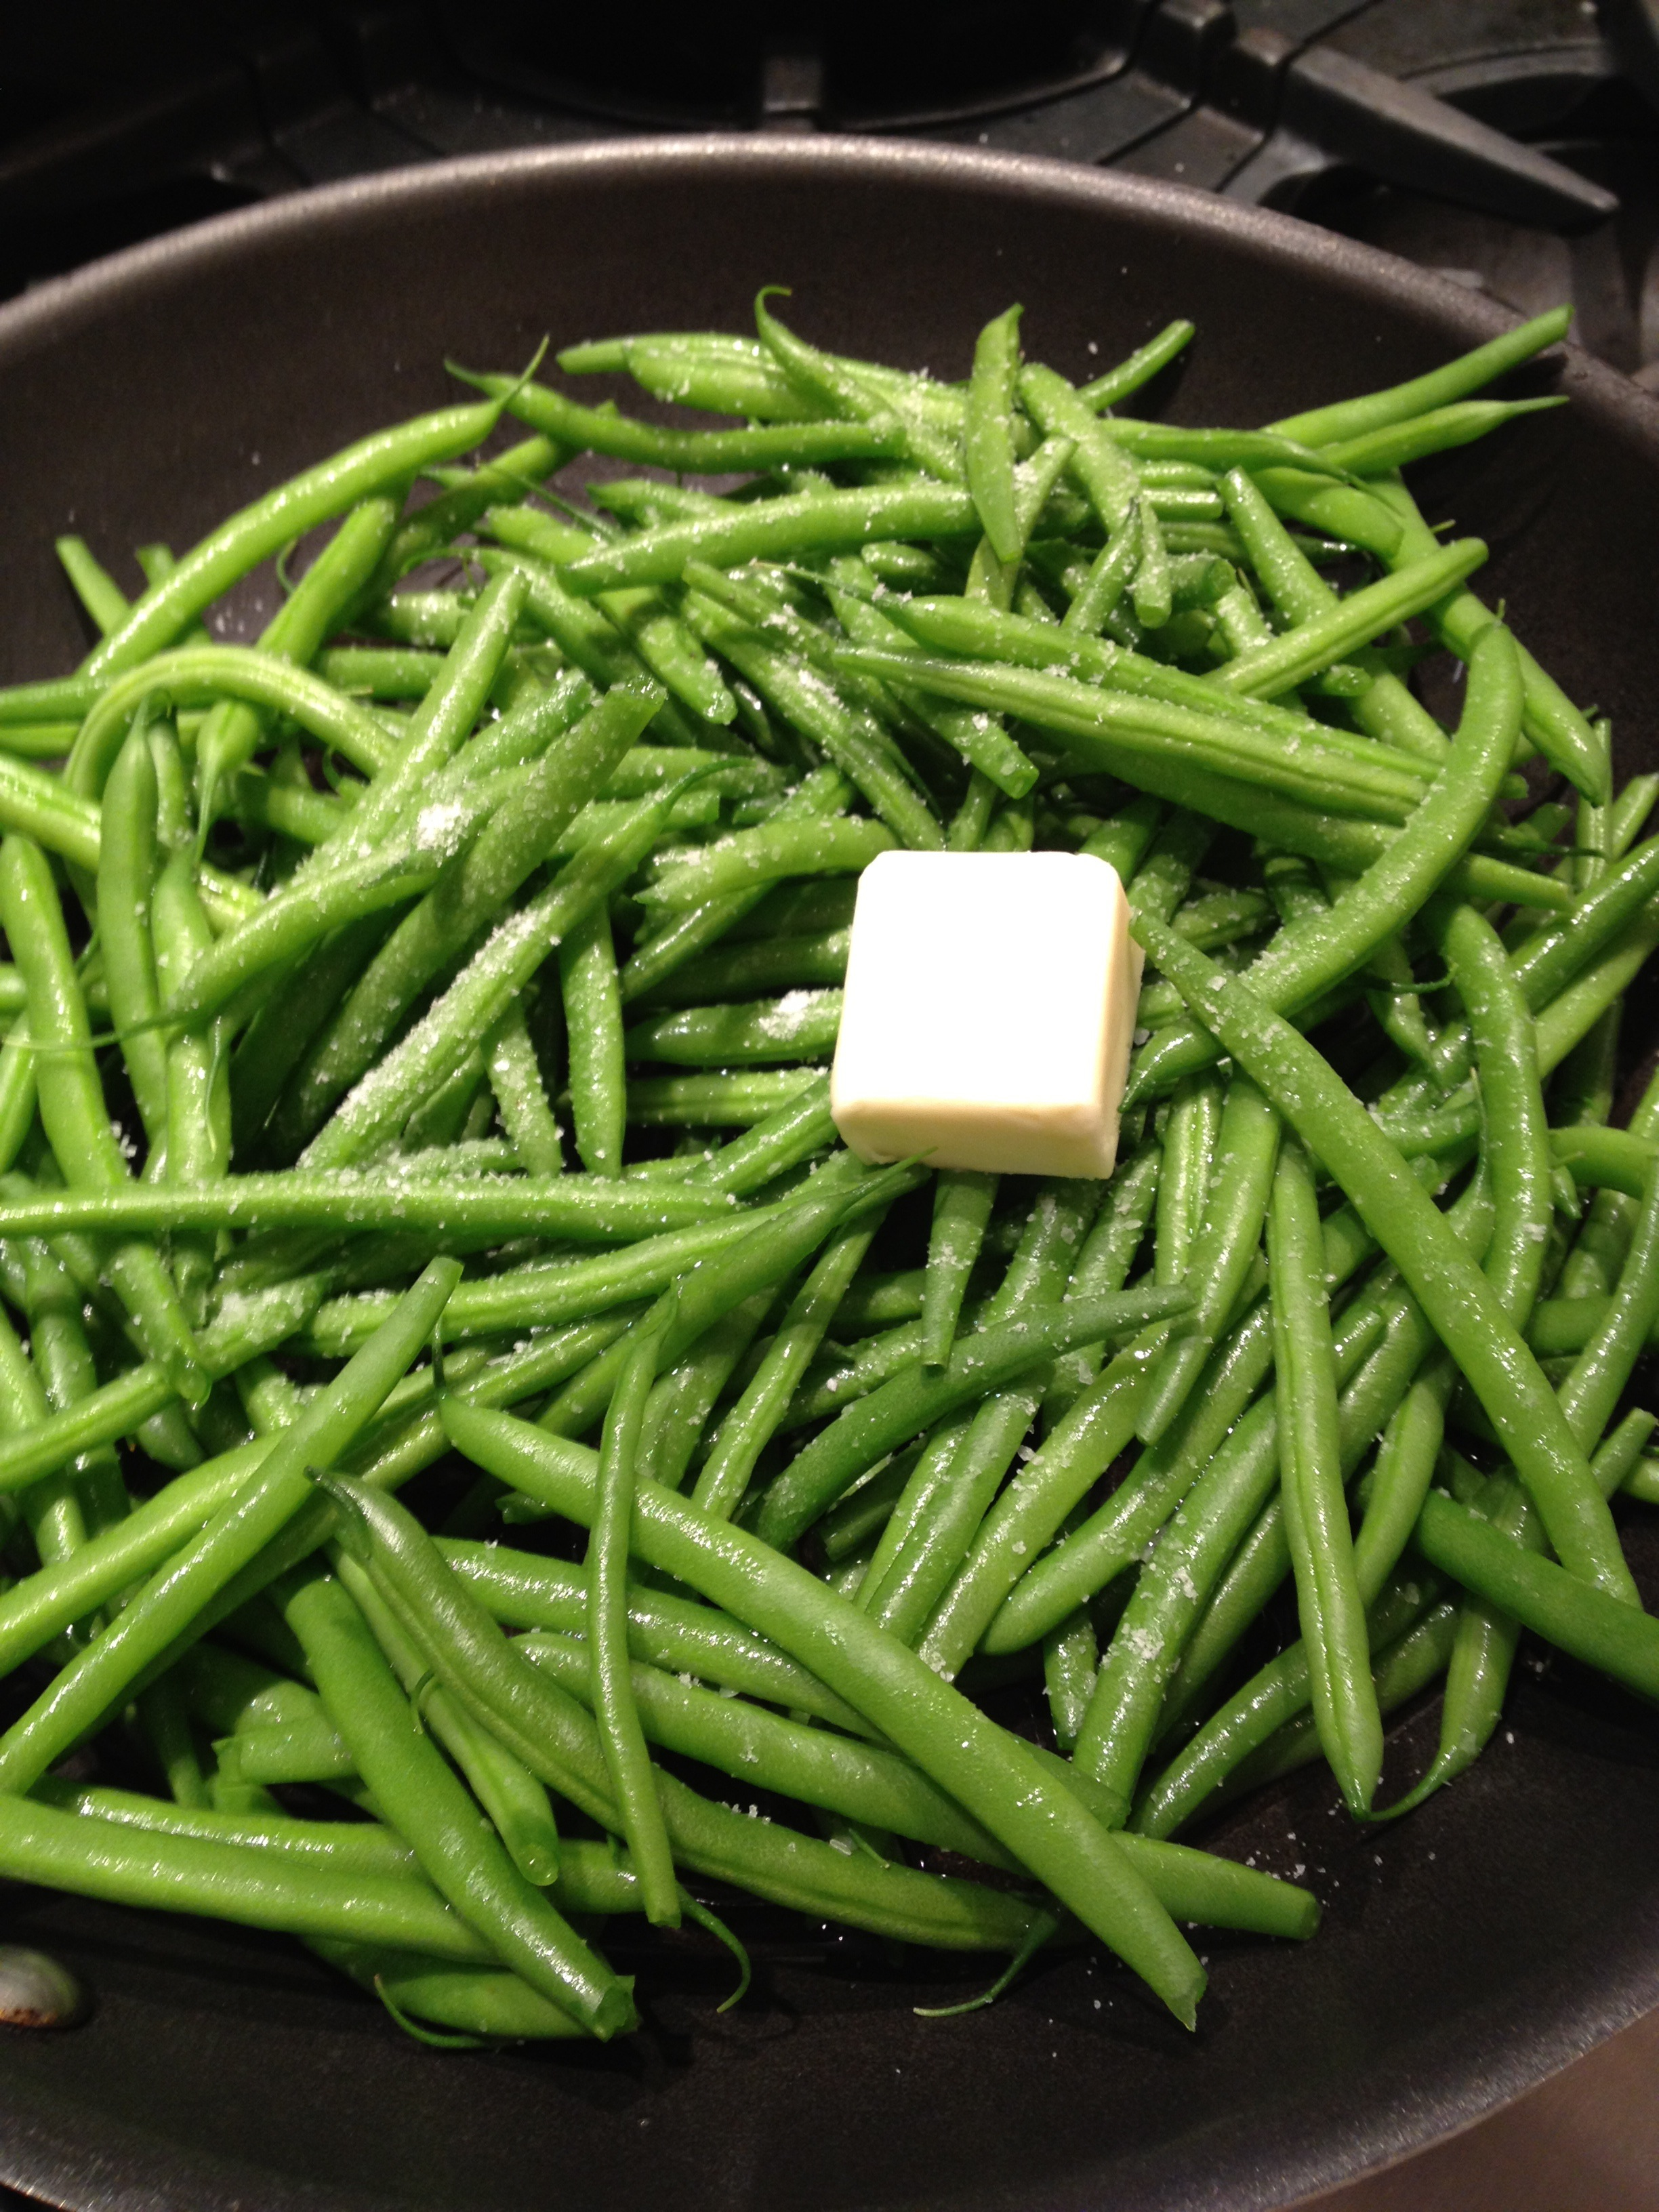 cooking green beans with salt View top rated cook fresh green beans with salt pork recipes with ratings and reviews asparagus and green beans with tarragon lemon dip, garlicky green beans with sunflower seeds,.